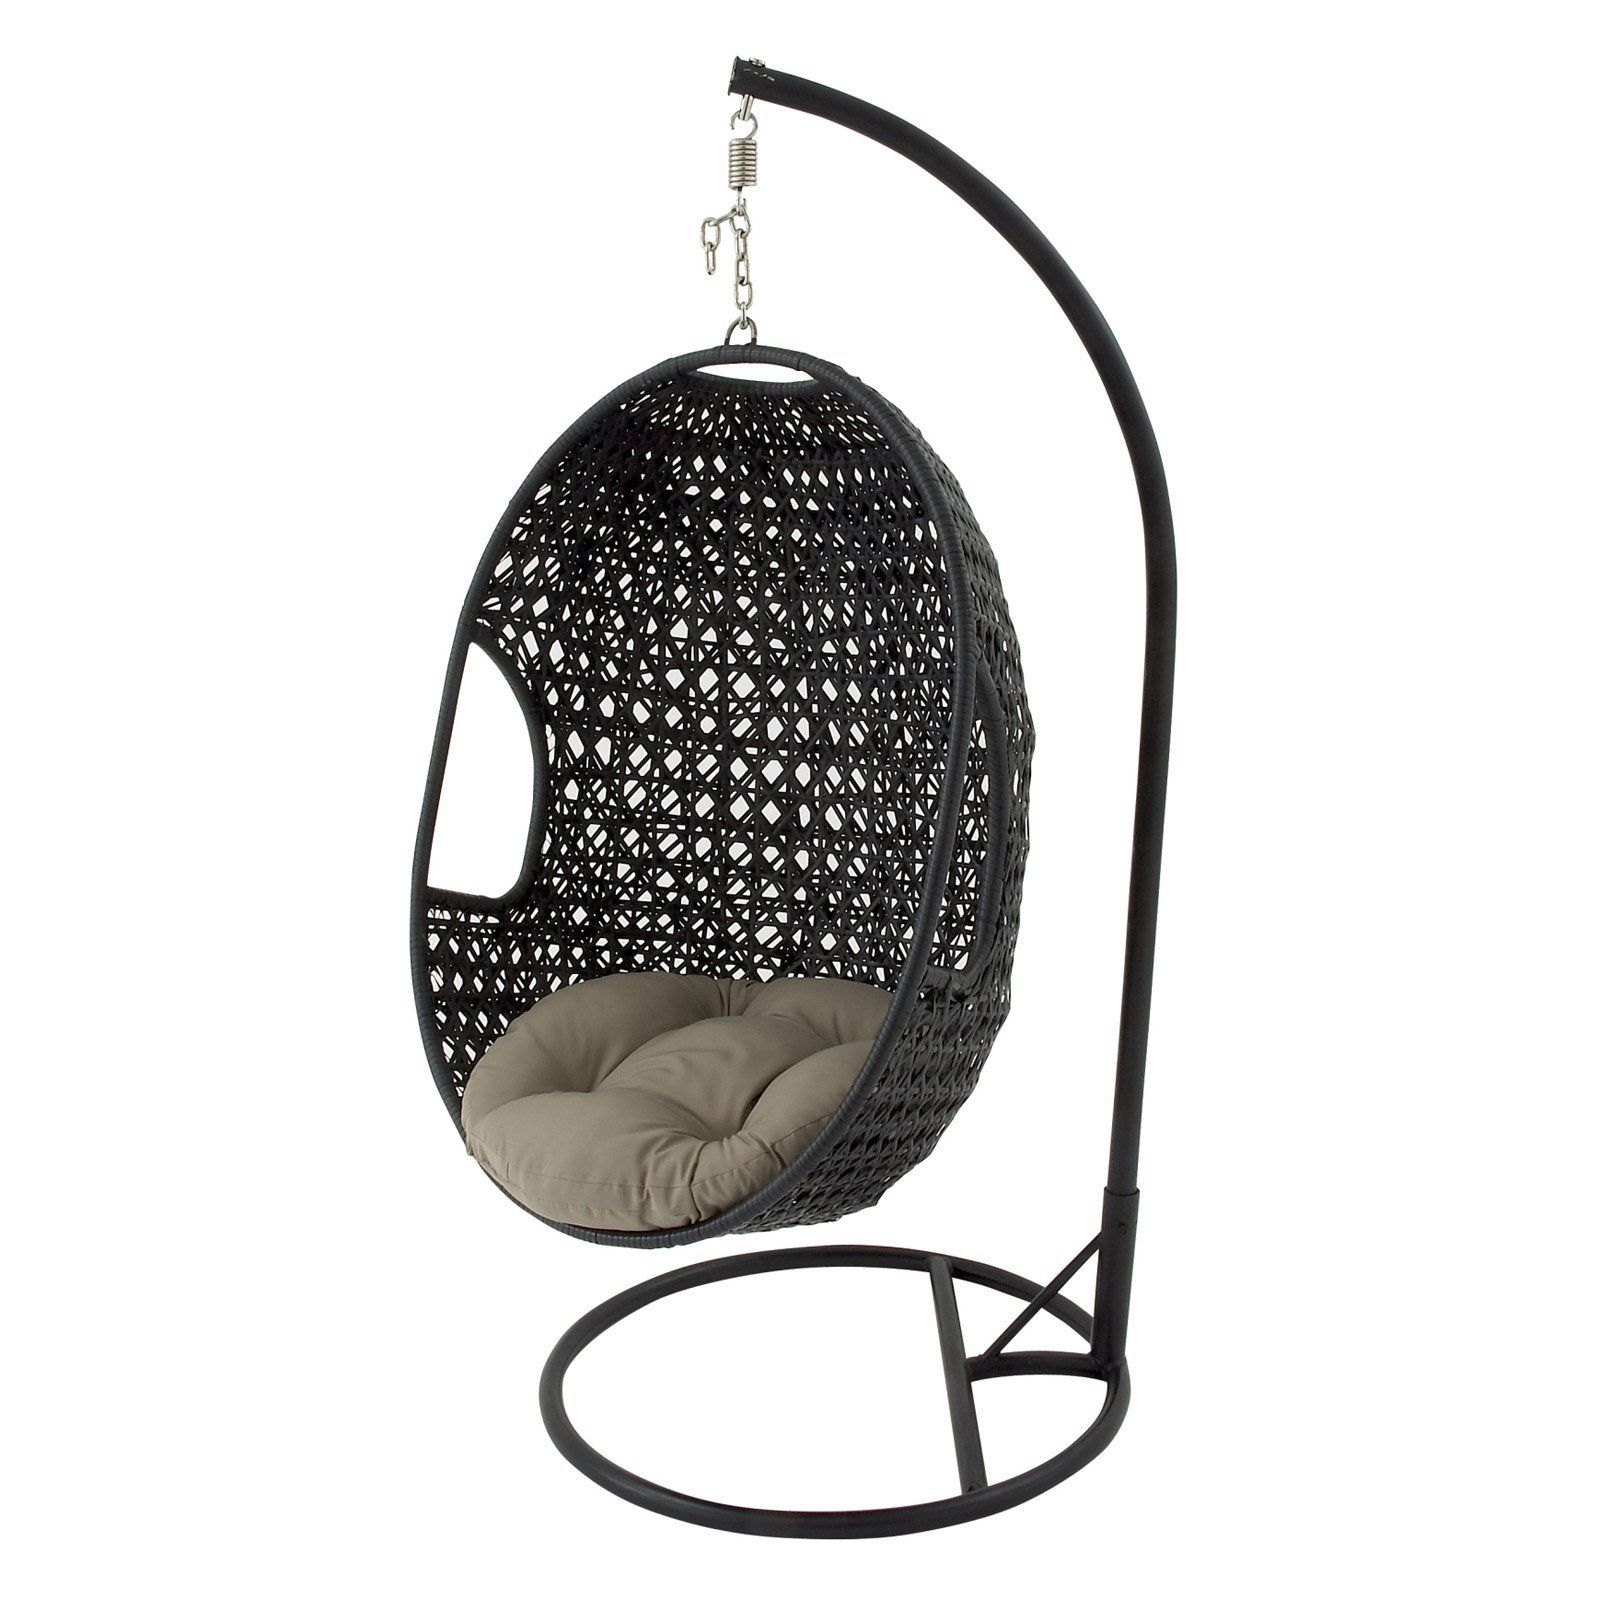 Outdoor decmode rattan hanging chair hammock with metal stand